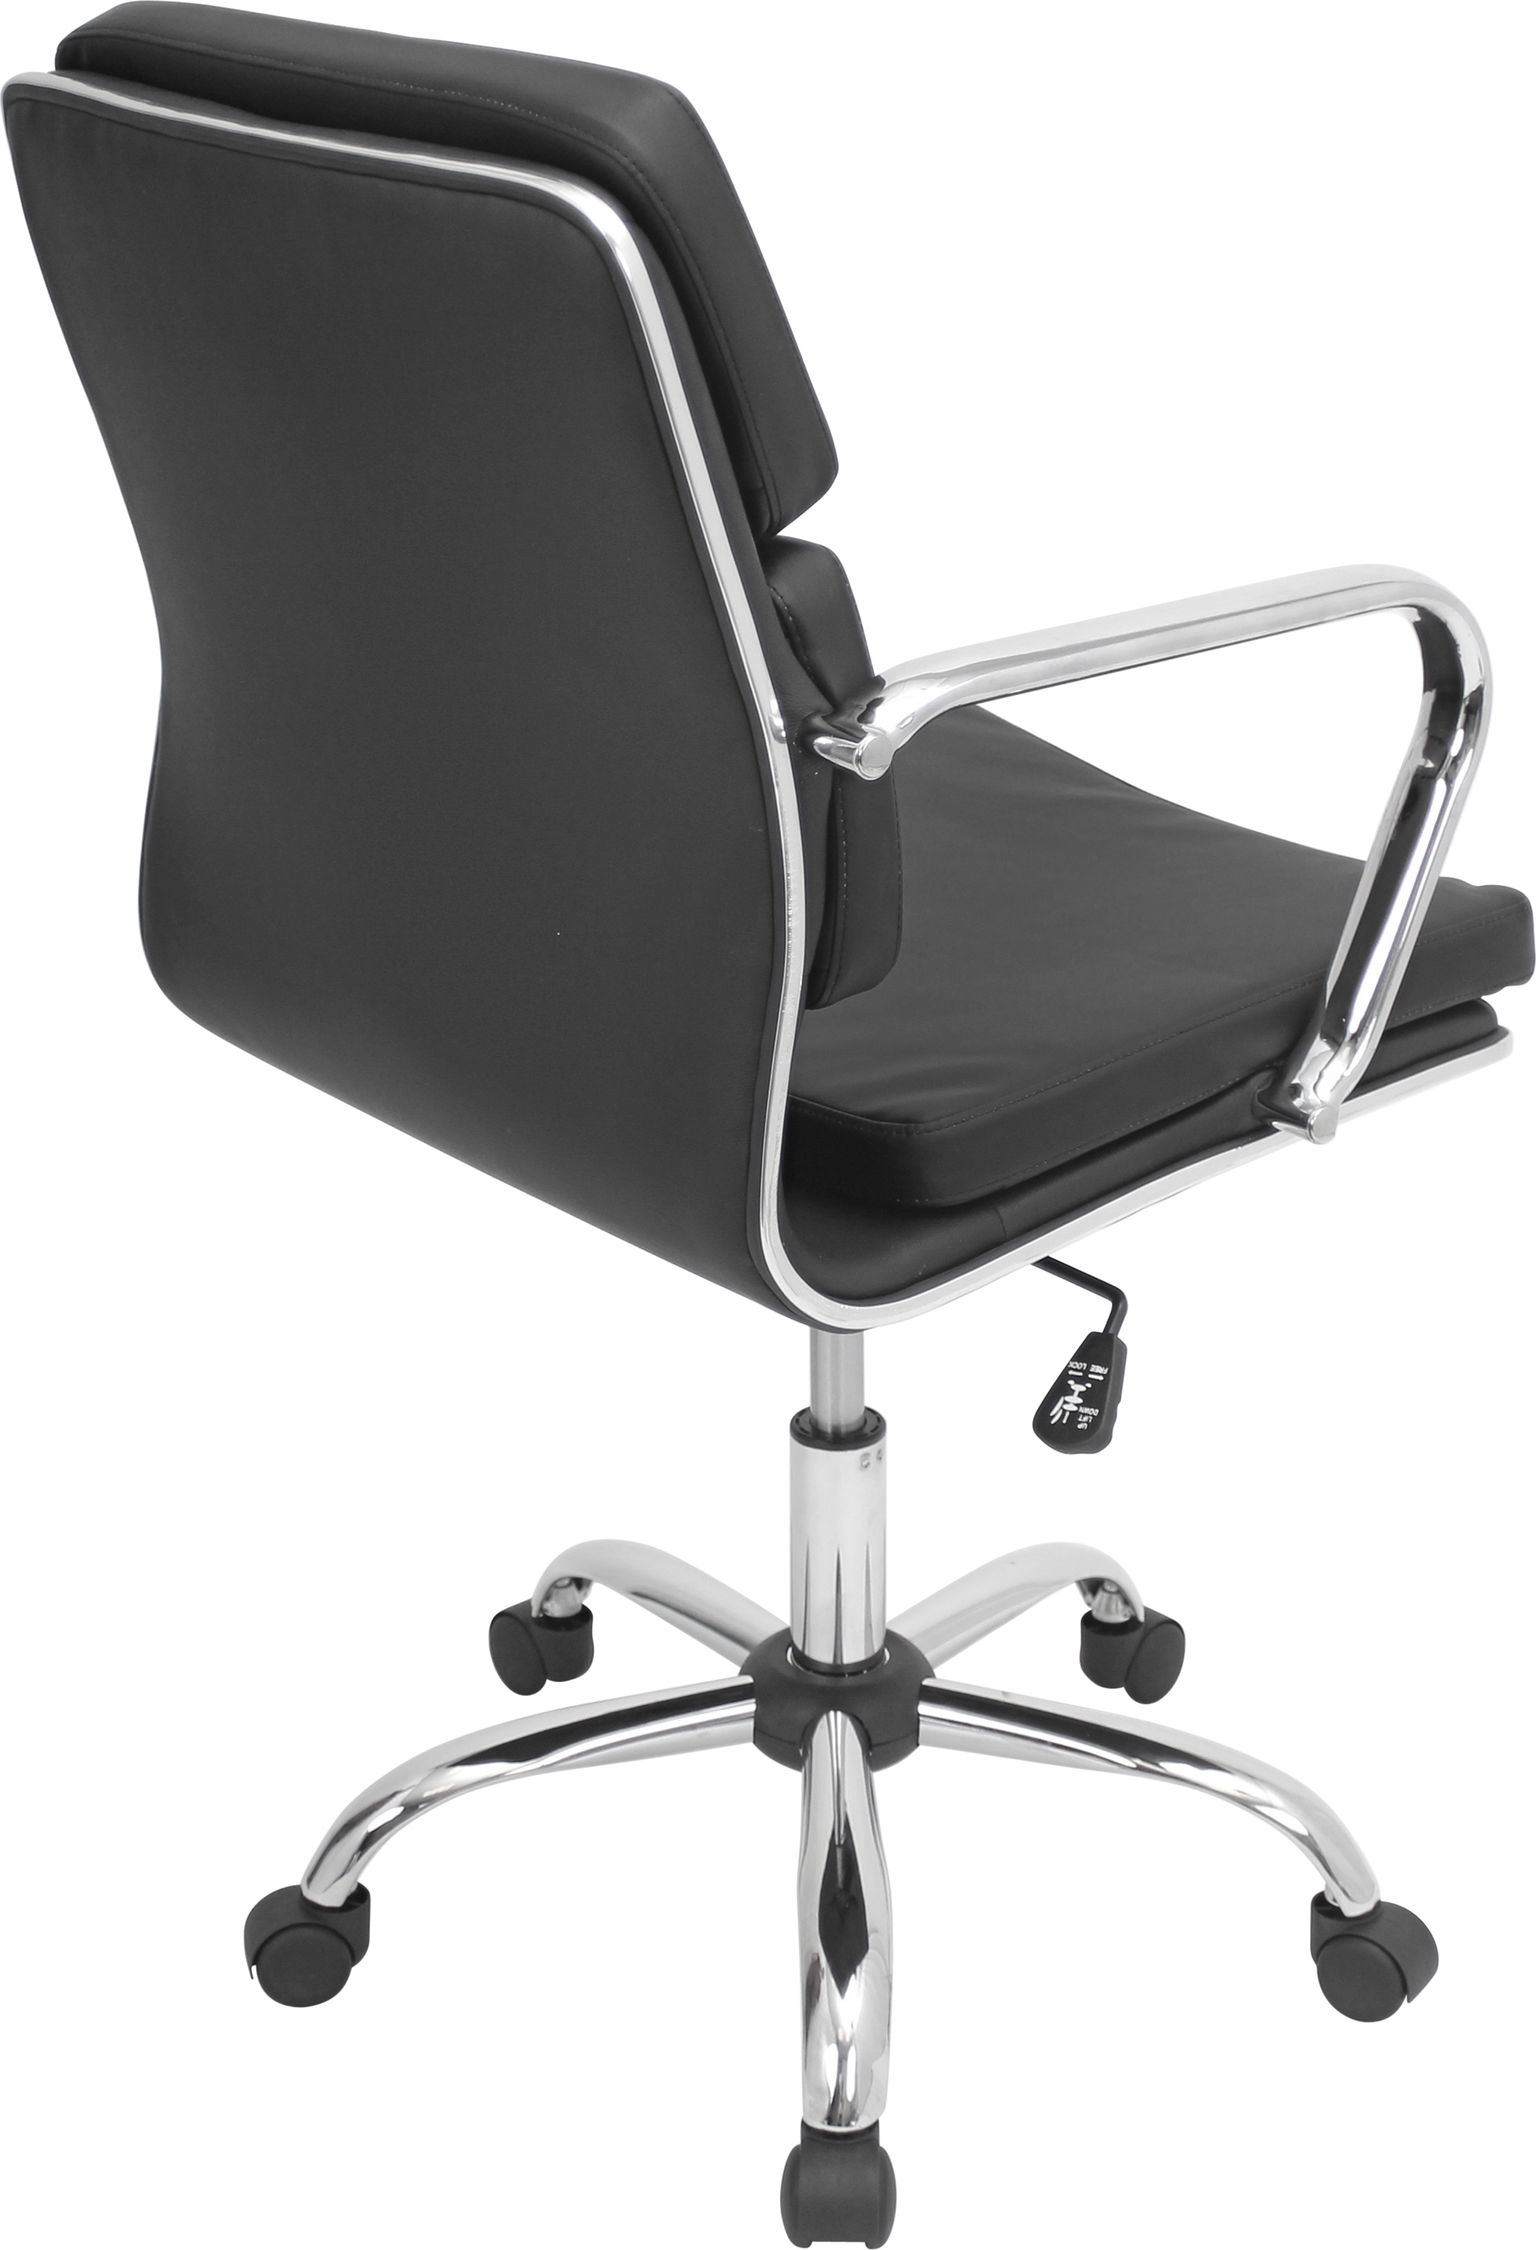 Bachelor Height Adjustable Office Chair with Swivel ...